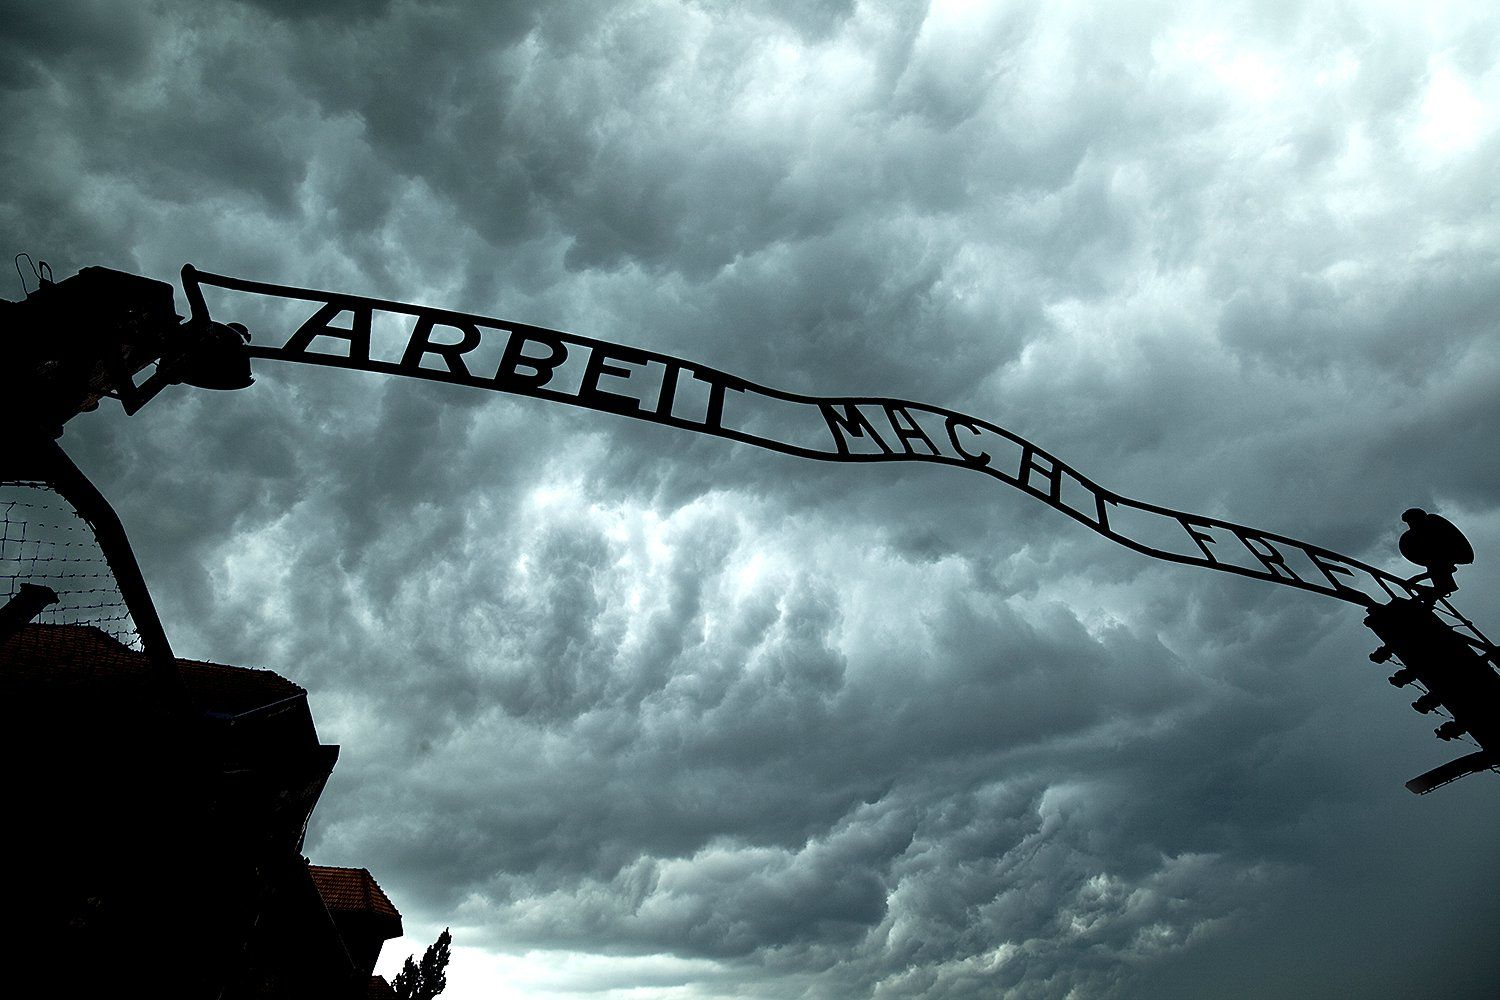 Work shall set you free'.  Entrance sign in Auschwitz concentration camp, Oswiecim, Poland - Jim Zuckerman Photography